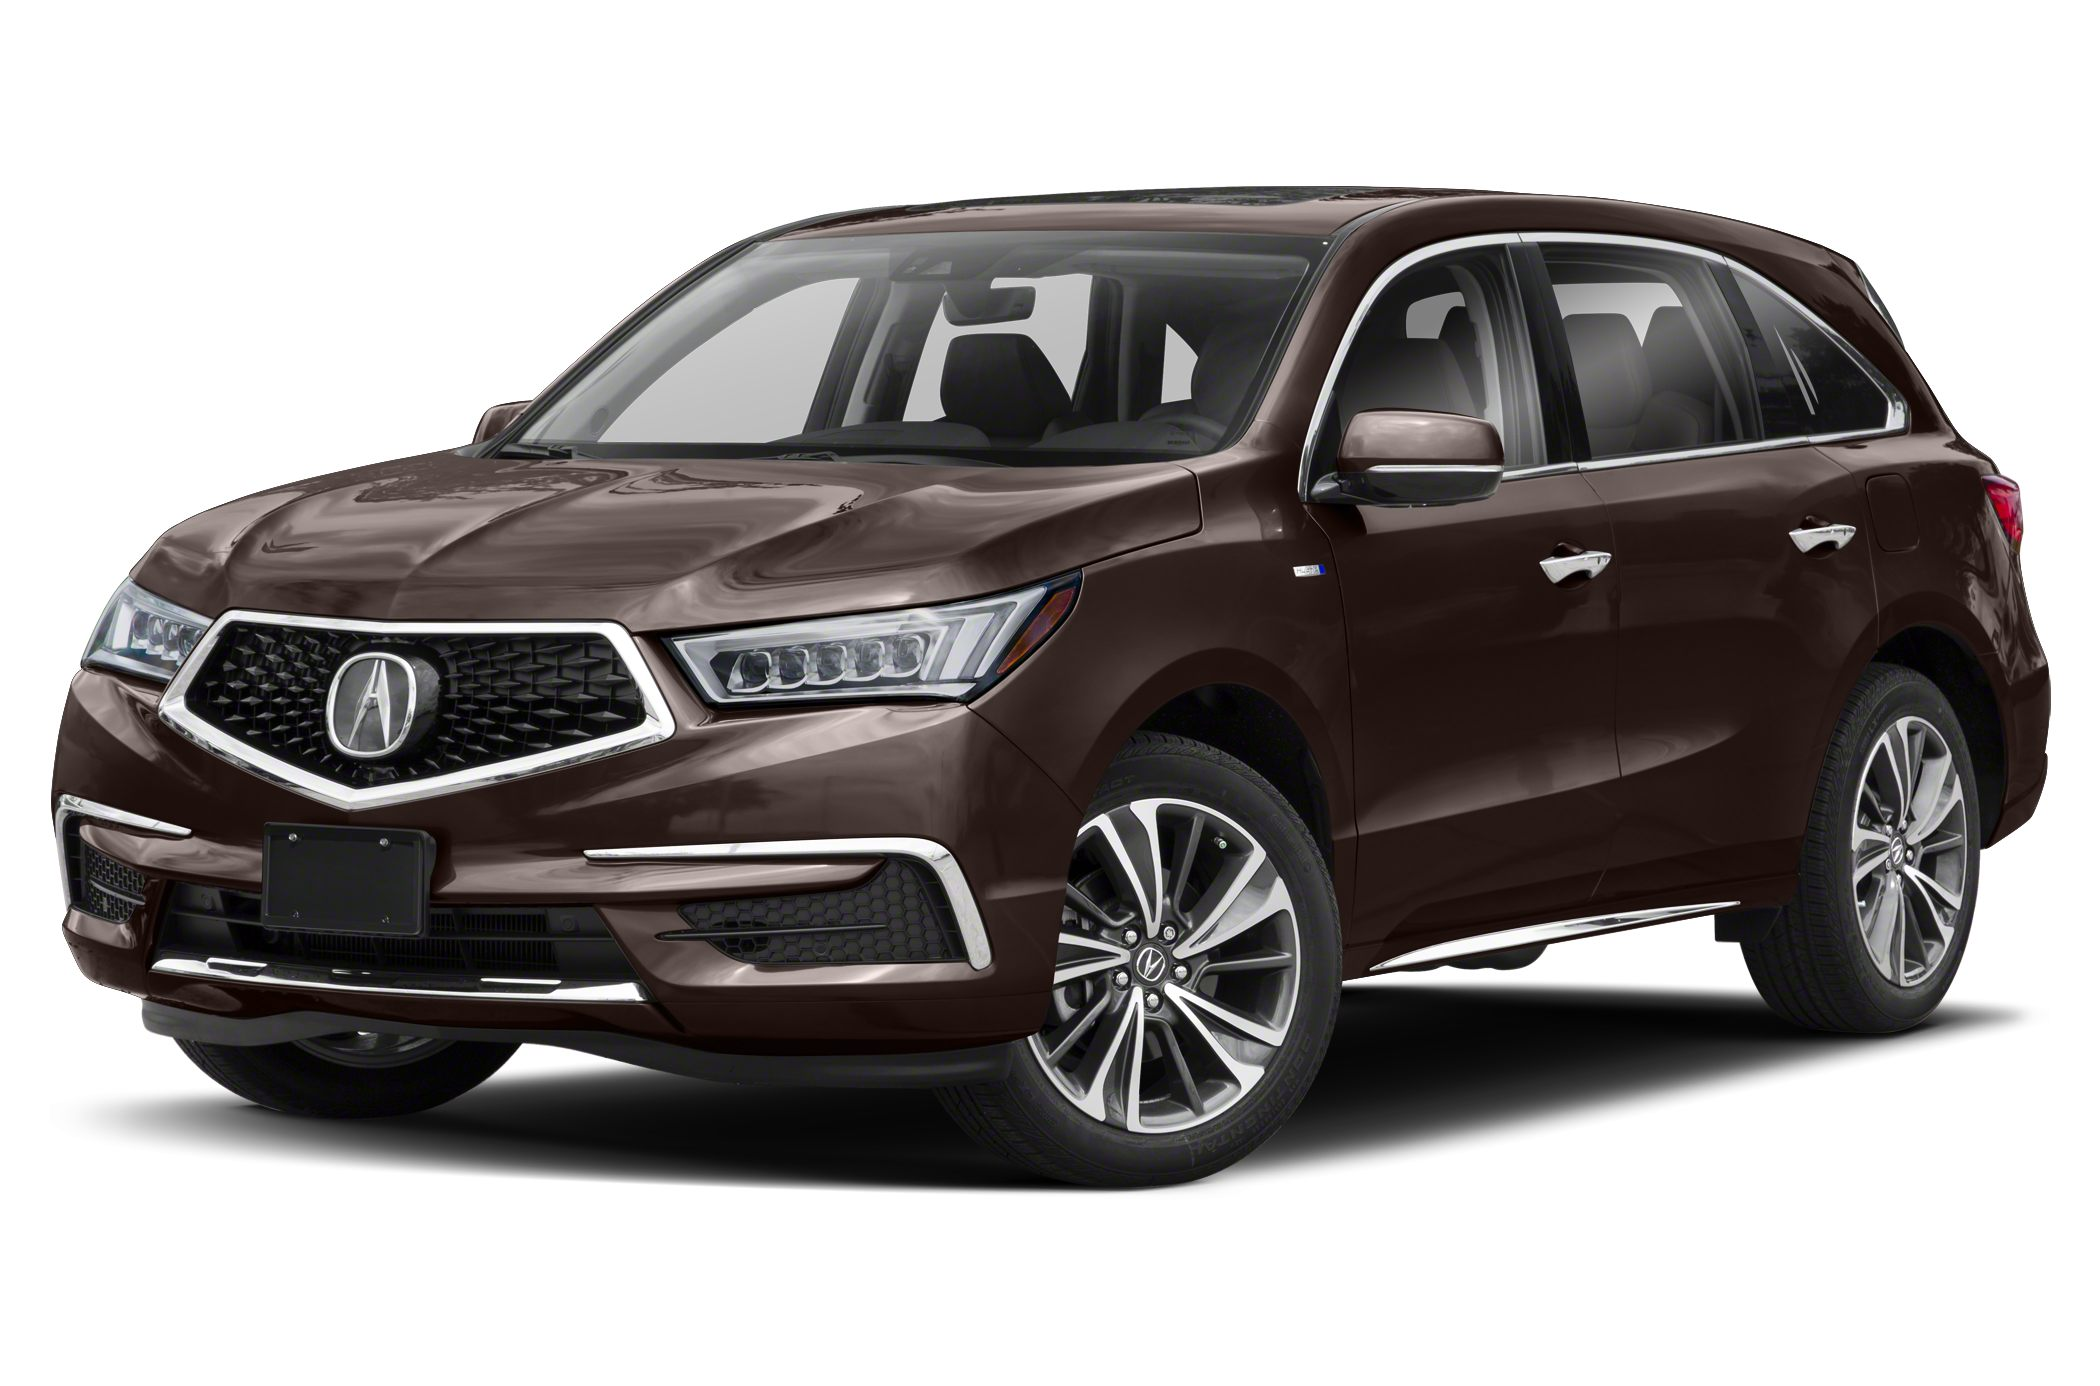 2019 Acura MDX Deals, Prices, Incentives & Leases, Overview - CarsDirect